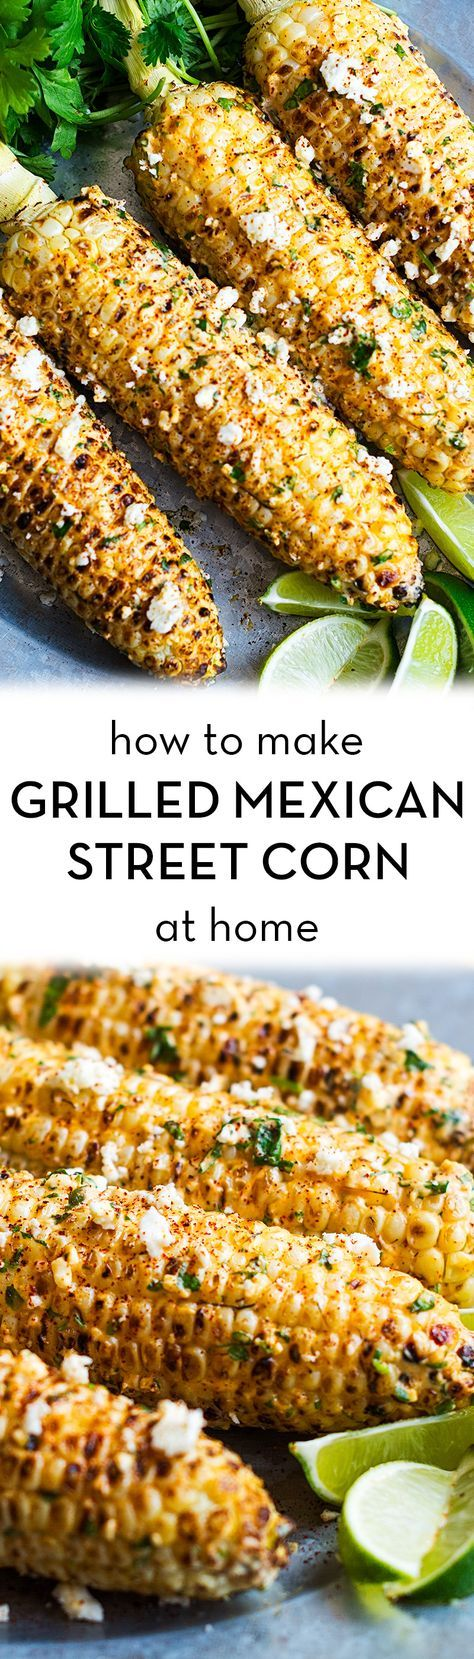 What are you making for Cinco De Mayo? Maybe you just liked grilled corn on the cob? You should try this sensational grilled Mexican street corn. /shamrockfarms/ [ad]